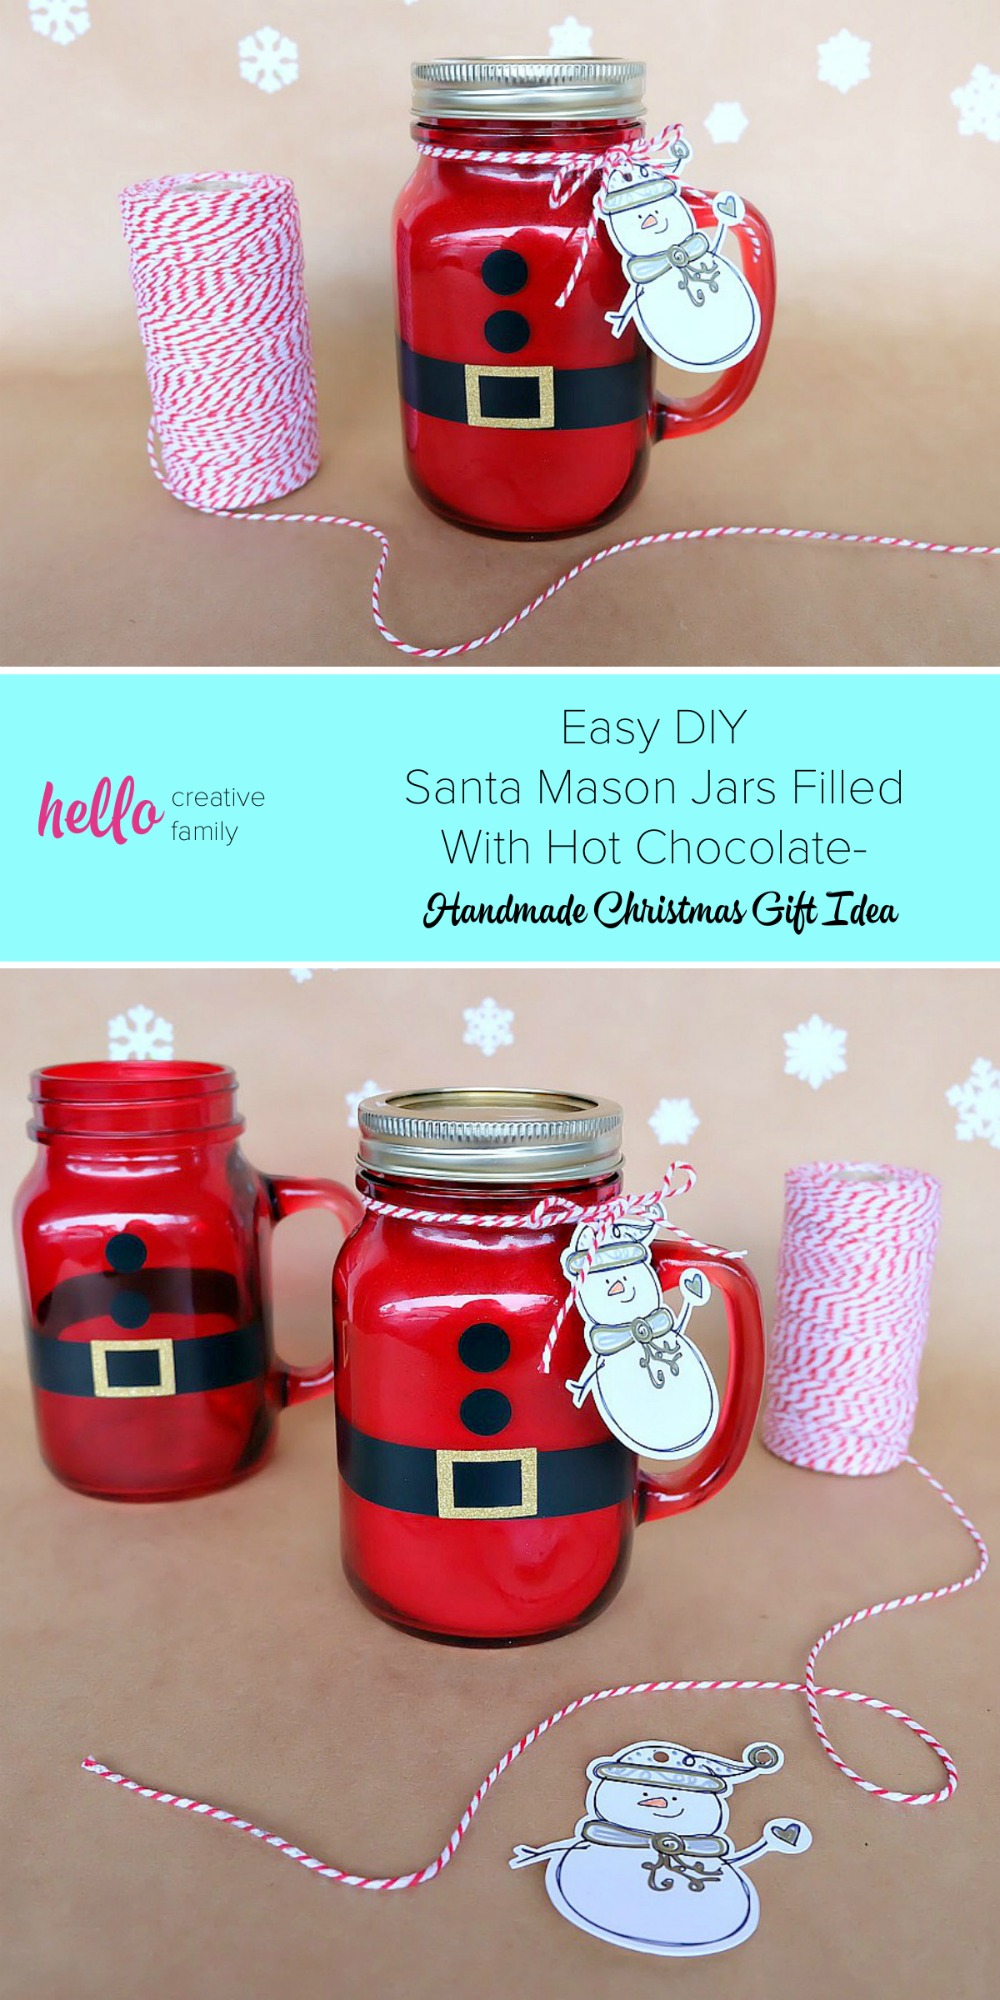 Easy DIY Santa Mason Jars Filled With Hot Chocolate- Handmade ...